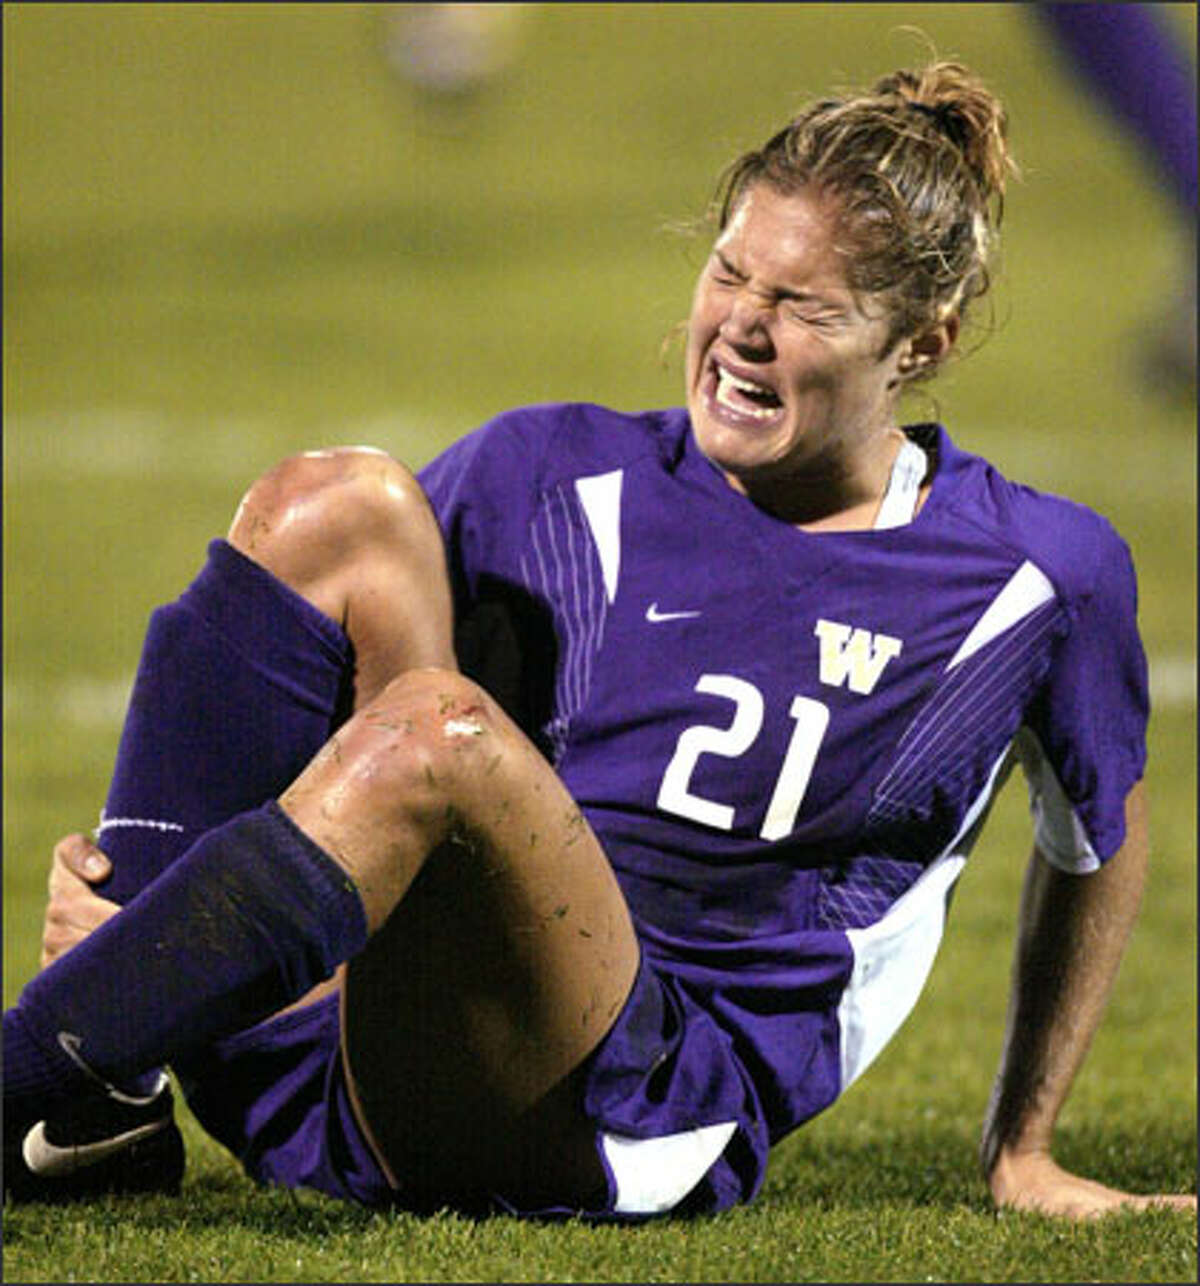 It's been a tough season all around for Kim Taylor, the only senior on the UW women's soccer team. Taylor is seventh in UW career goals but has none this season.